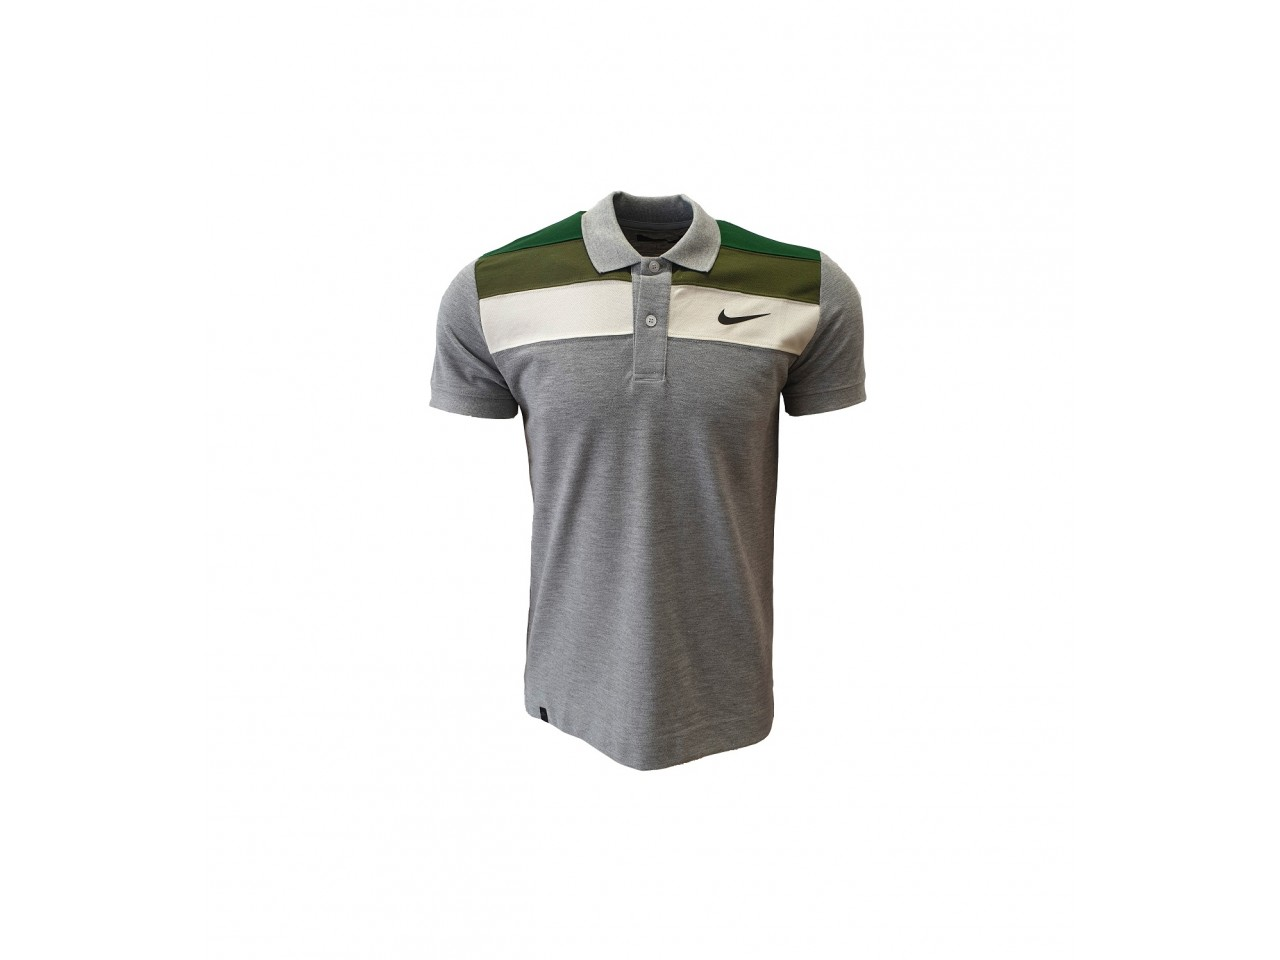 Nike Polo T-Shirt Light Grey Green